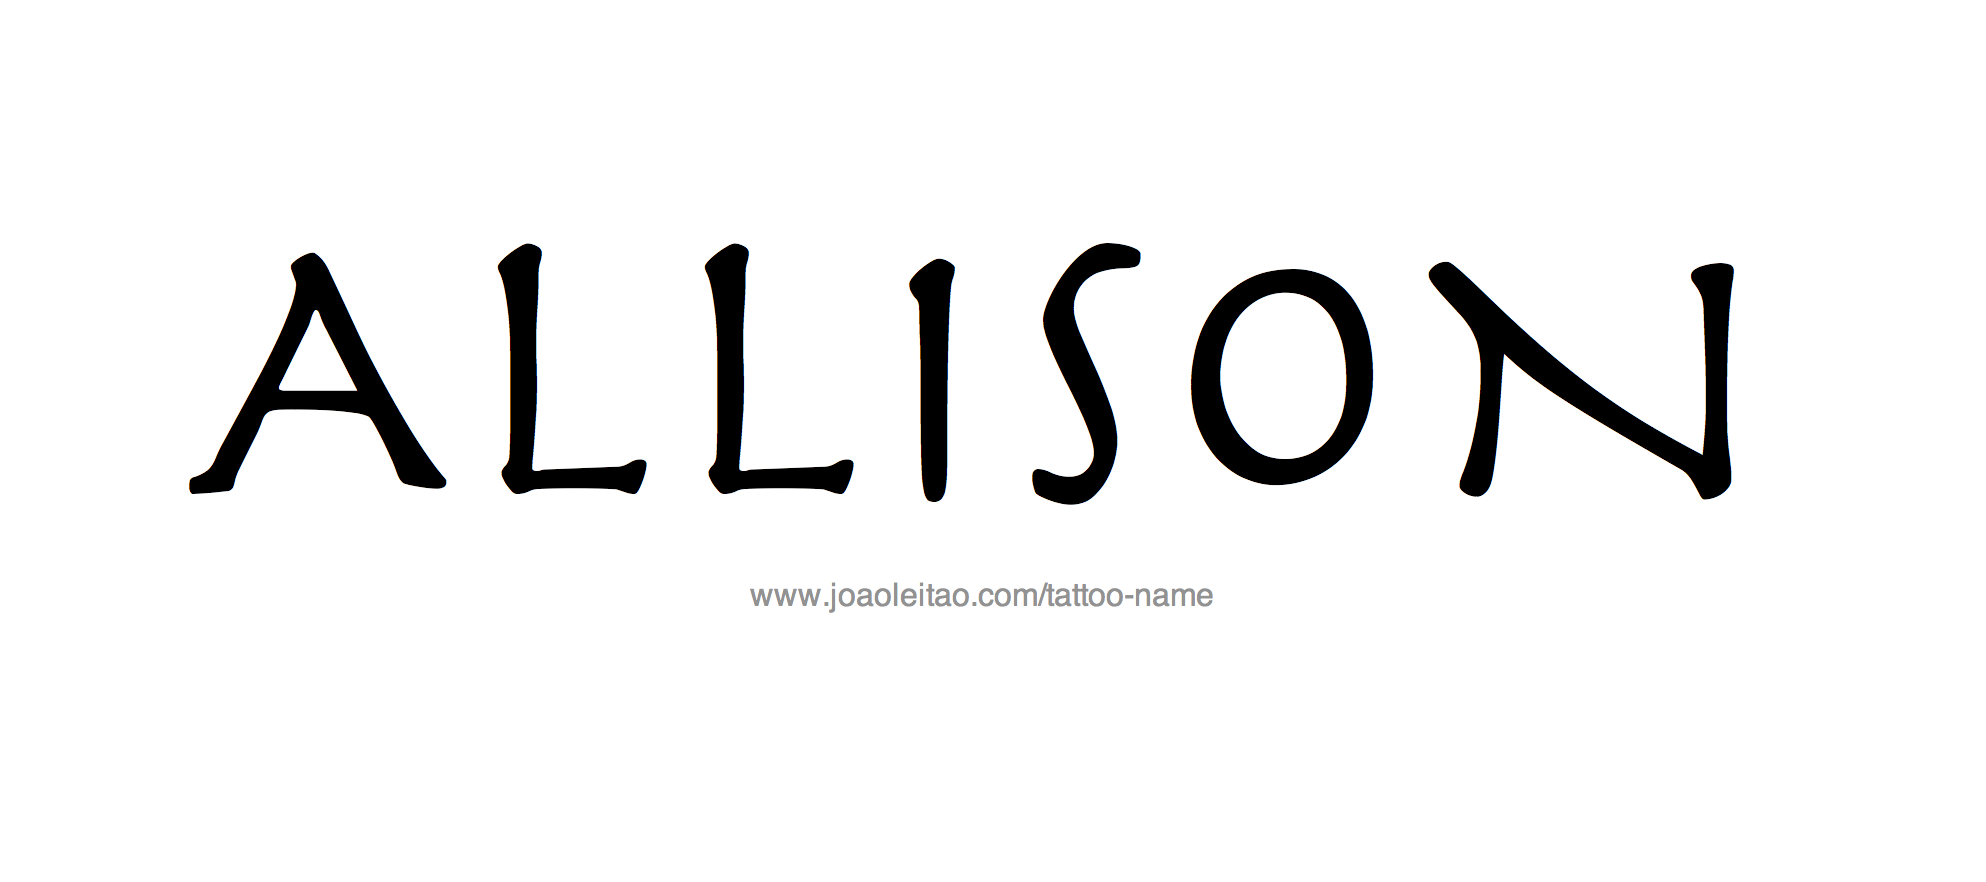 Tattoo Design Name Allison